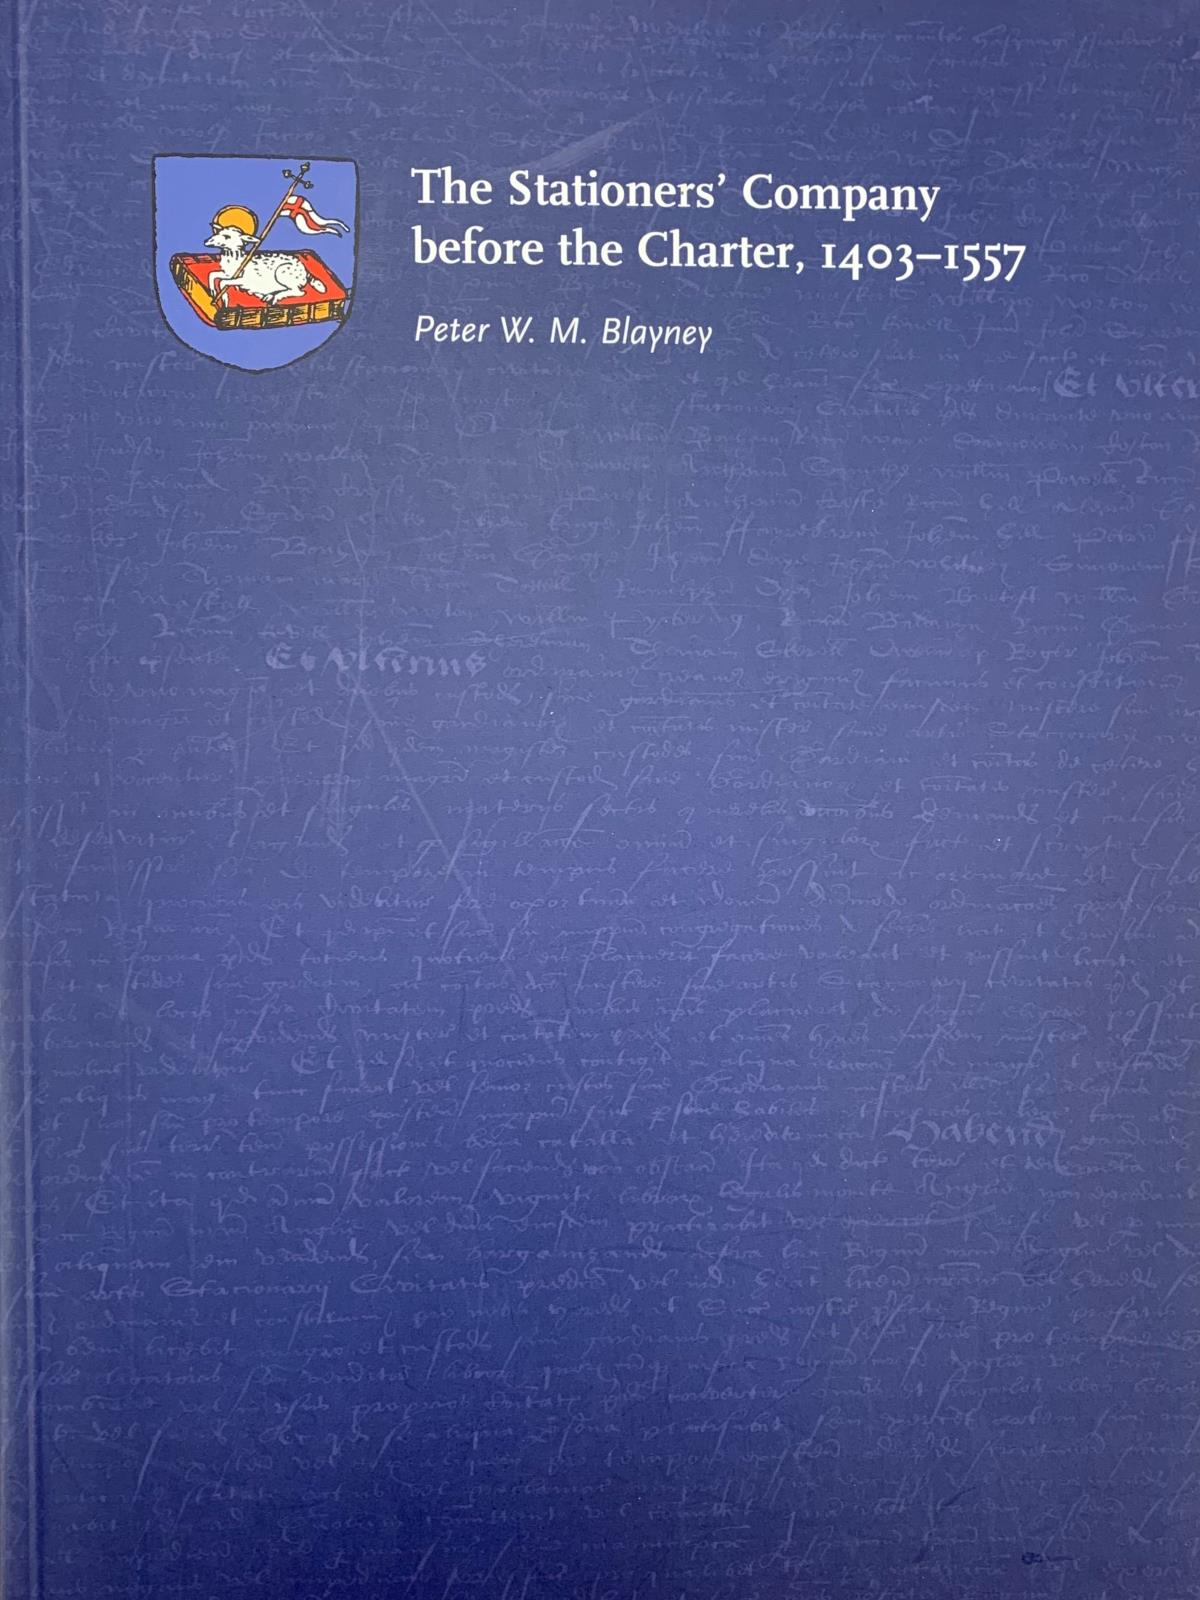 The Company before the Charter 1403-1557 by P Blayney